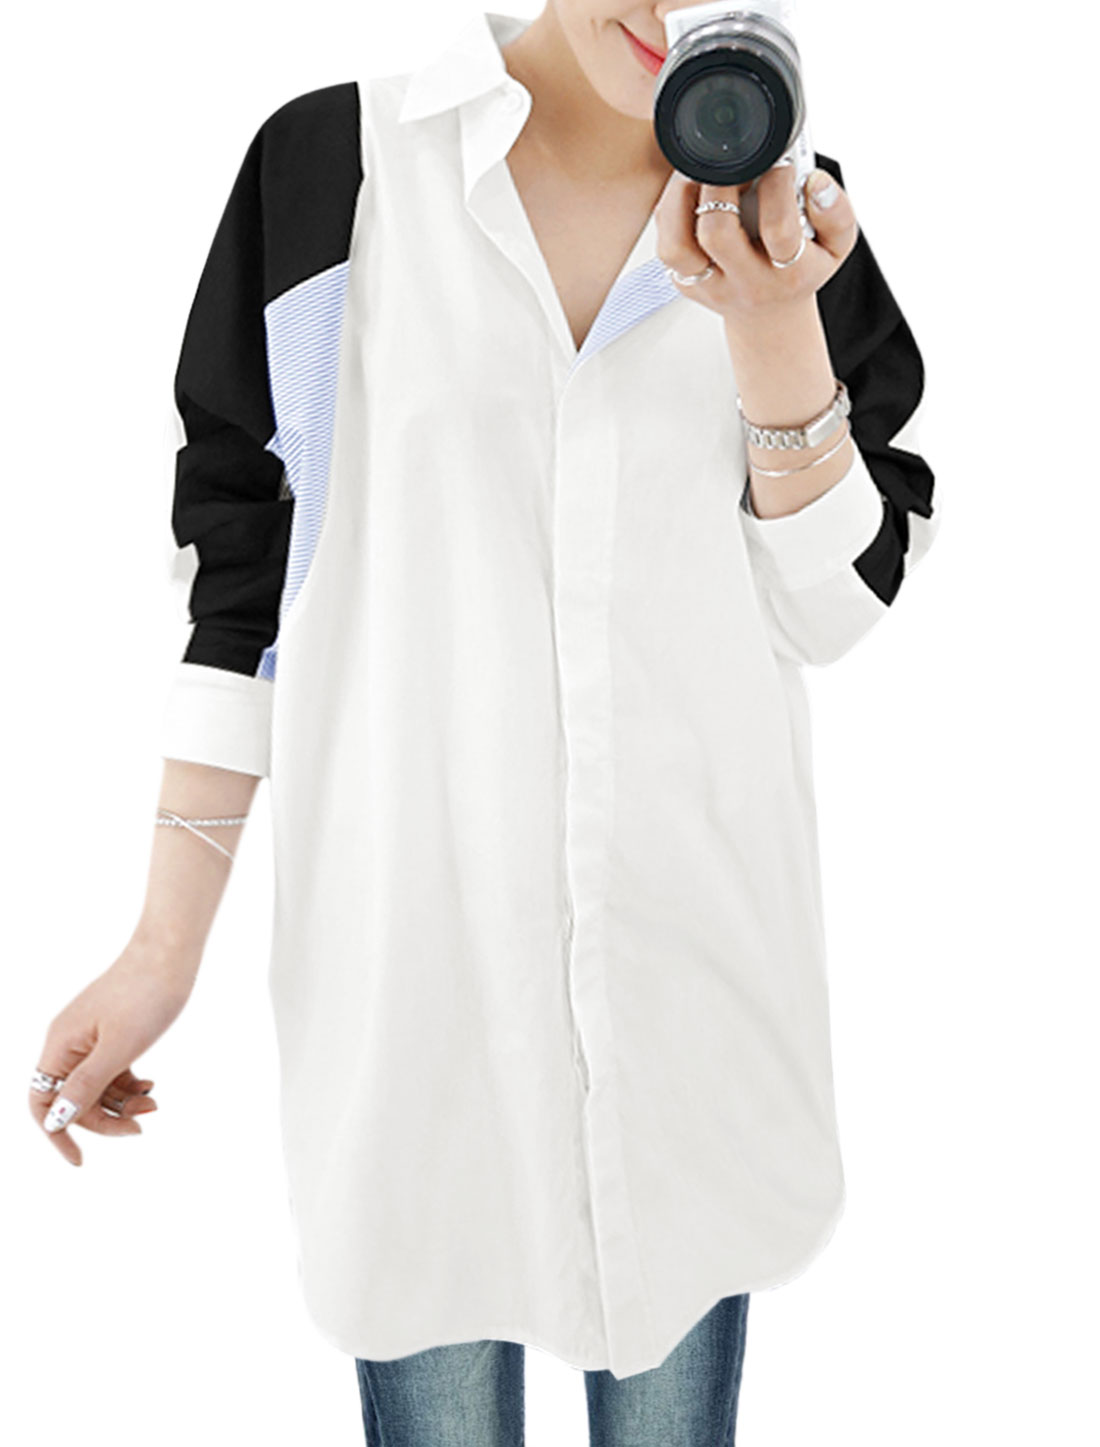 Women Long Sleeves Contrast Color Hidden Placket Tunic Shirt White XS